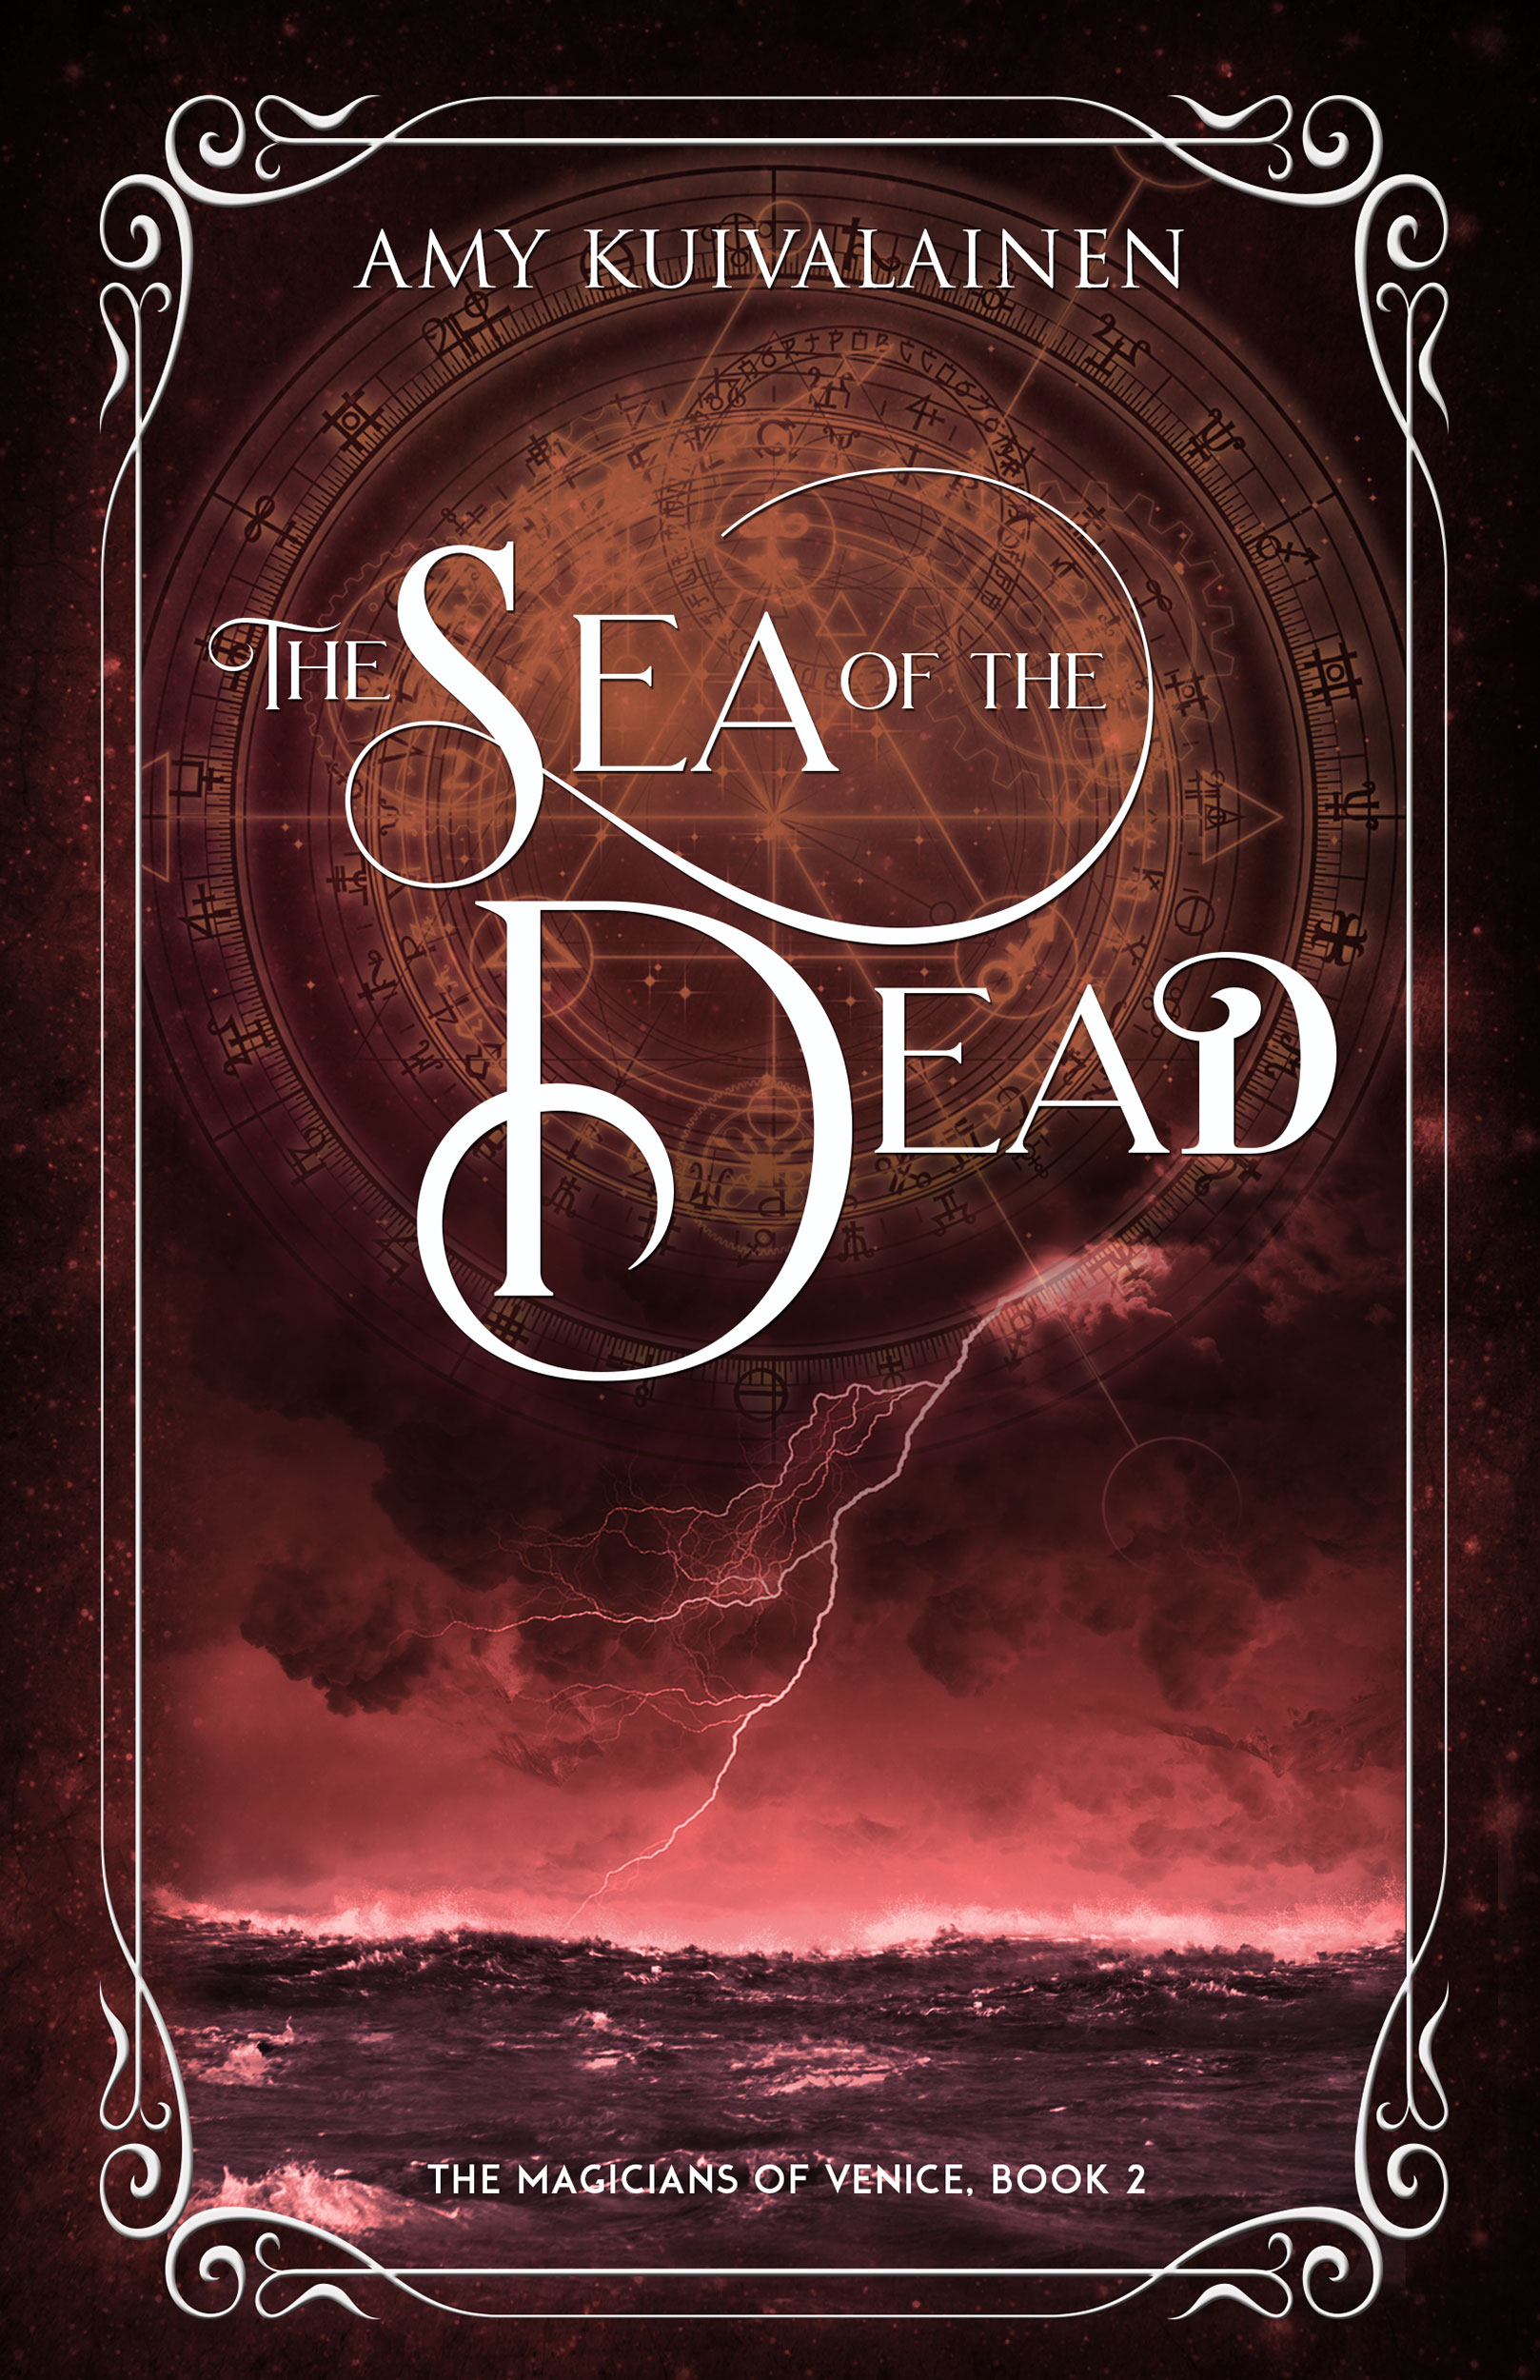 book cover for The Magicians of Venice book 2 - The Sea of the Dead by Amy Kuivalainen